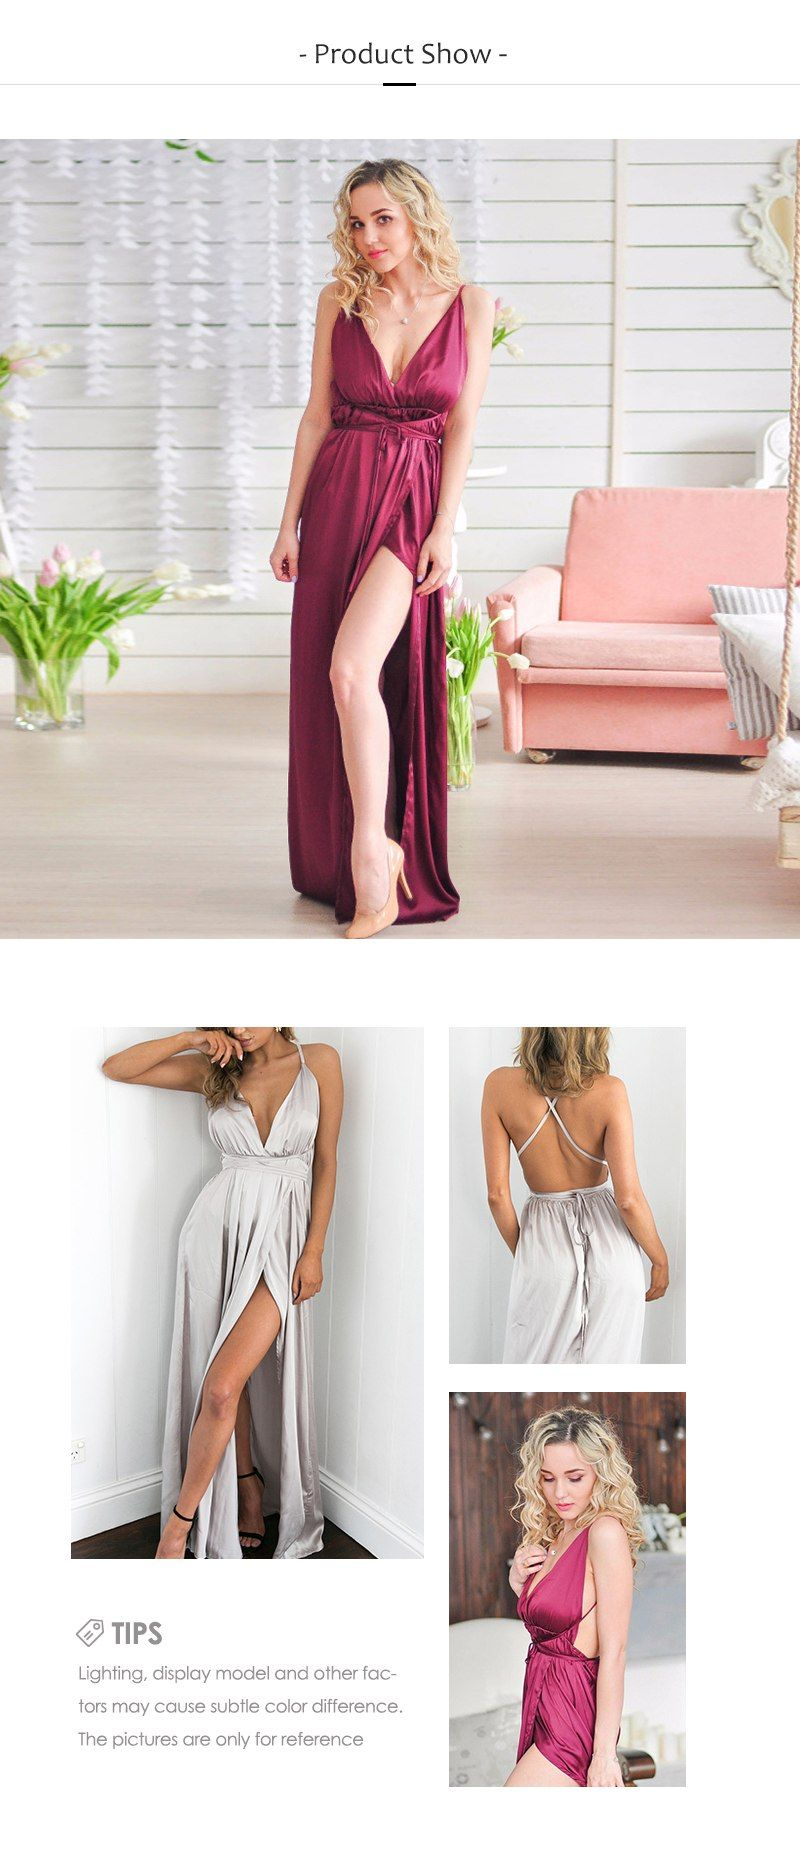 Berrygo elegant backless satin long dress women evening summer dress